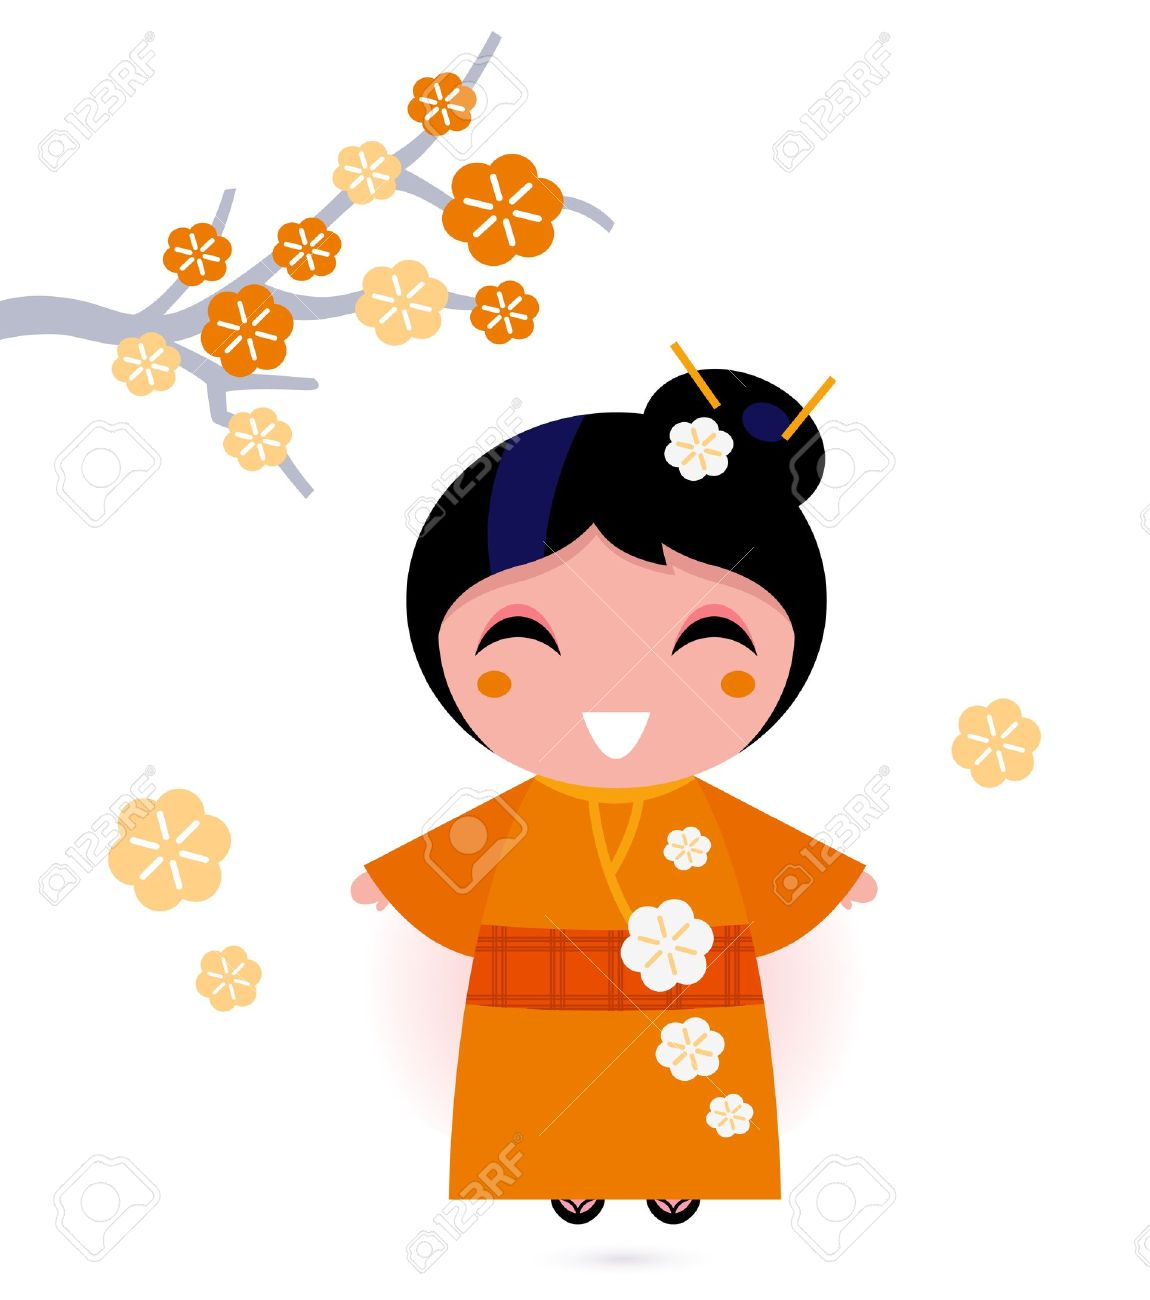 Korean Clipart Free Free Download Best Korean Clipart Free On